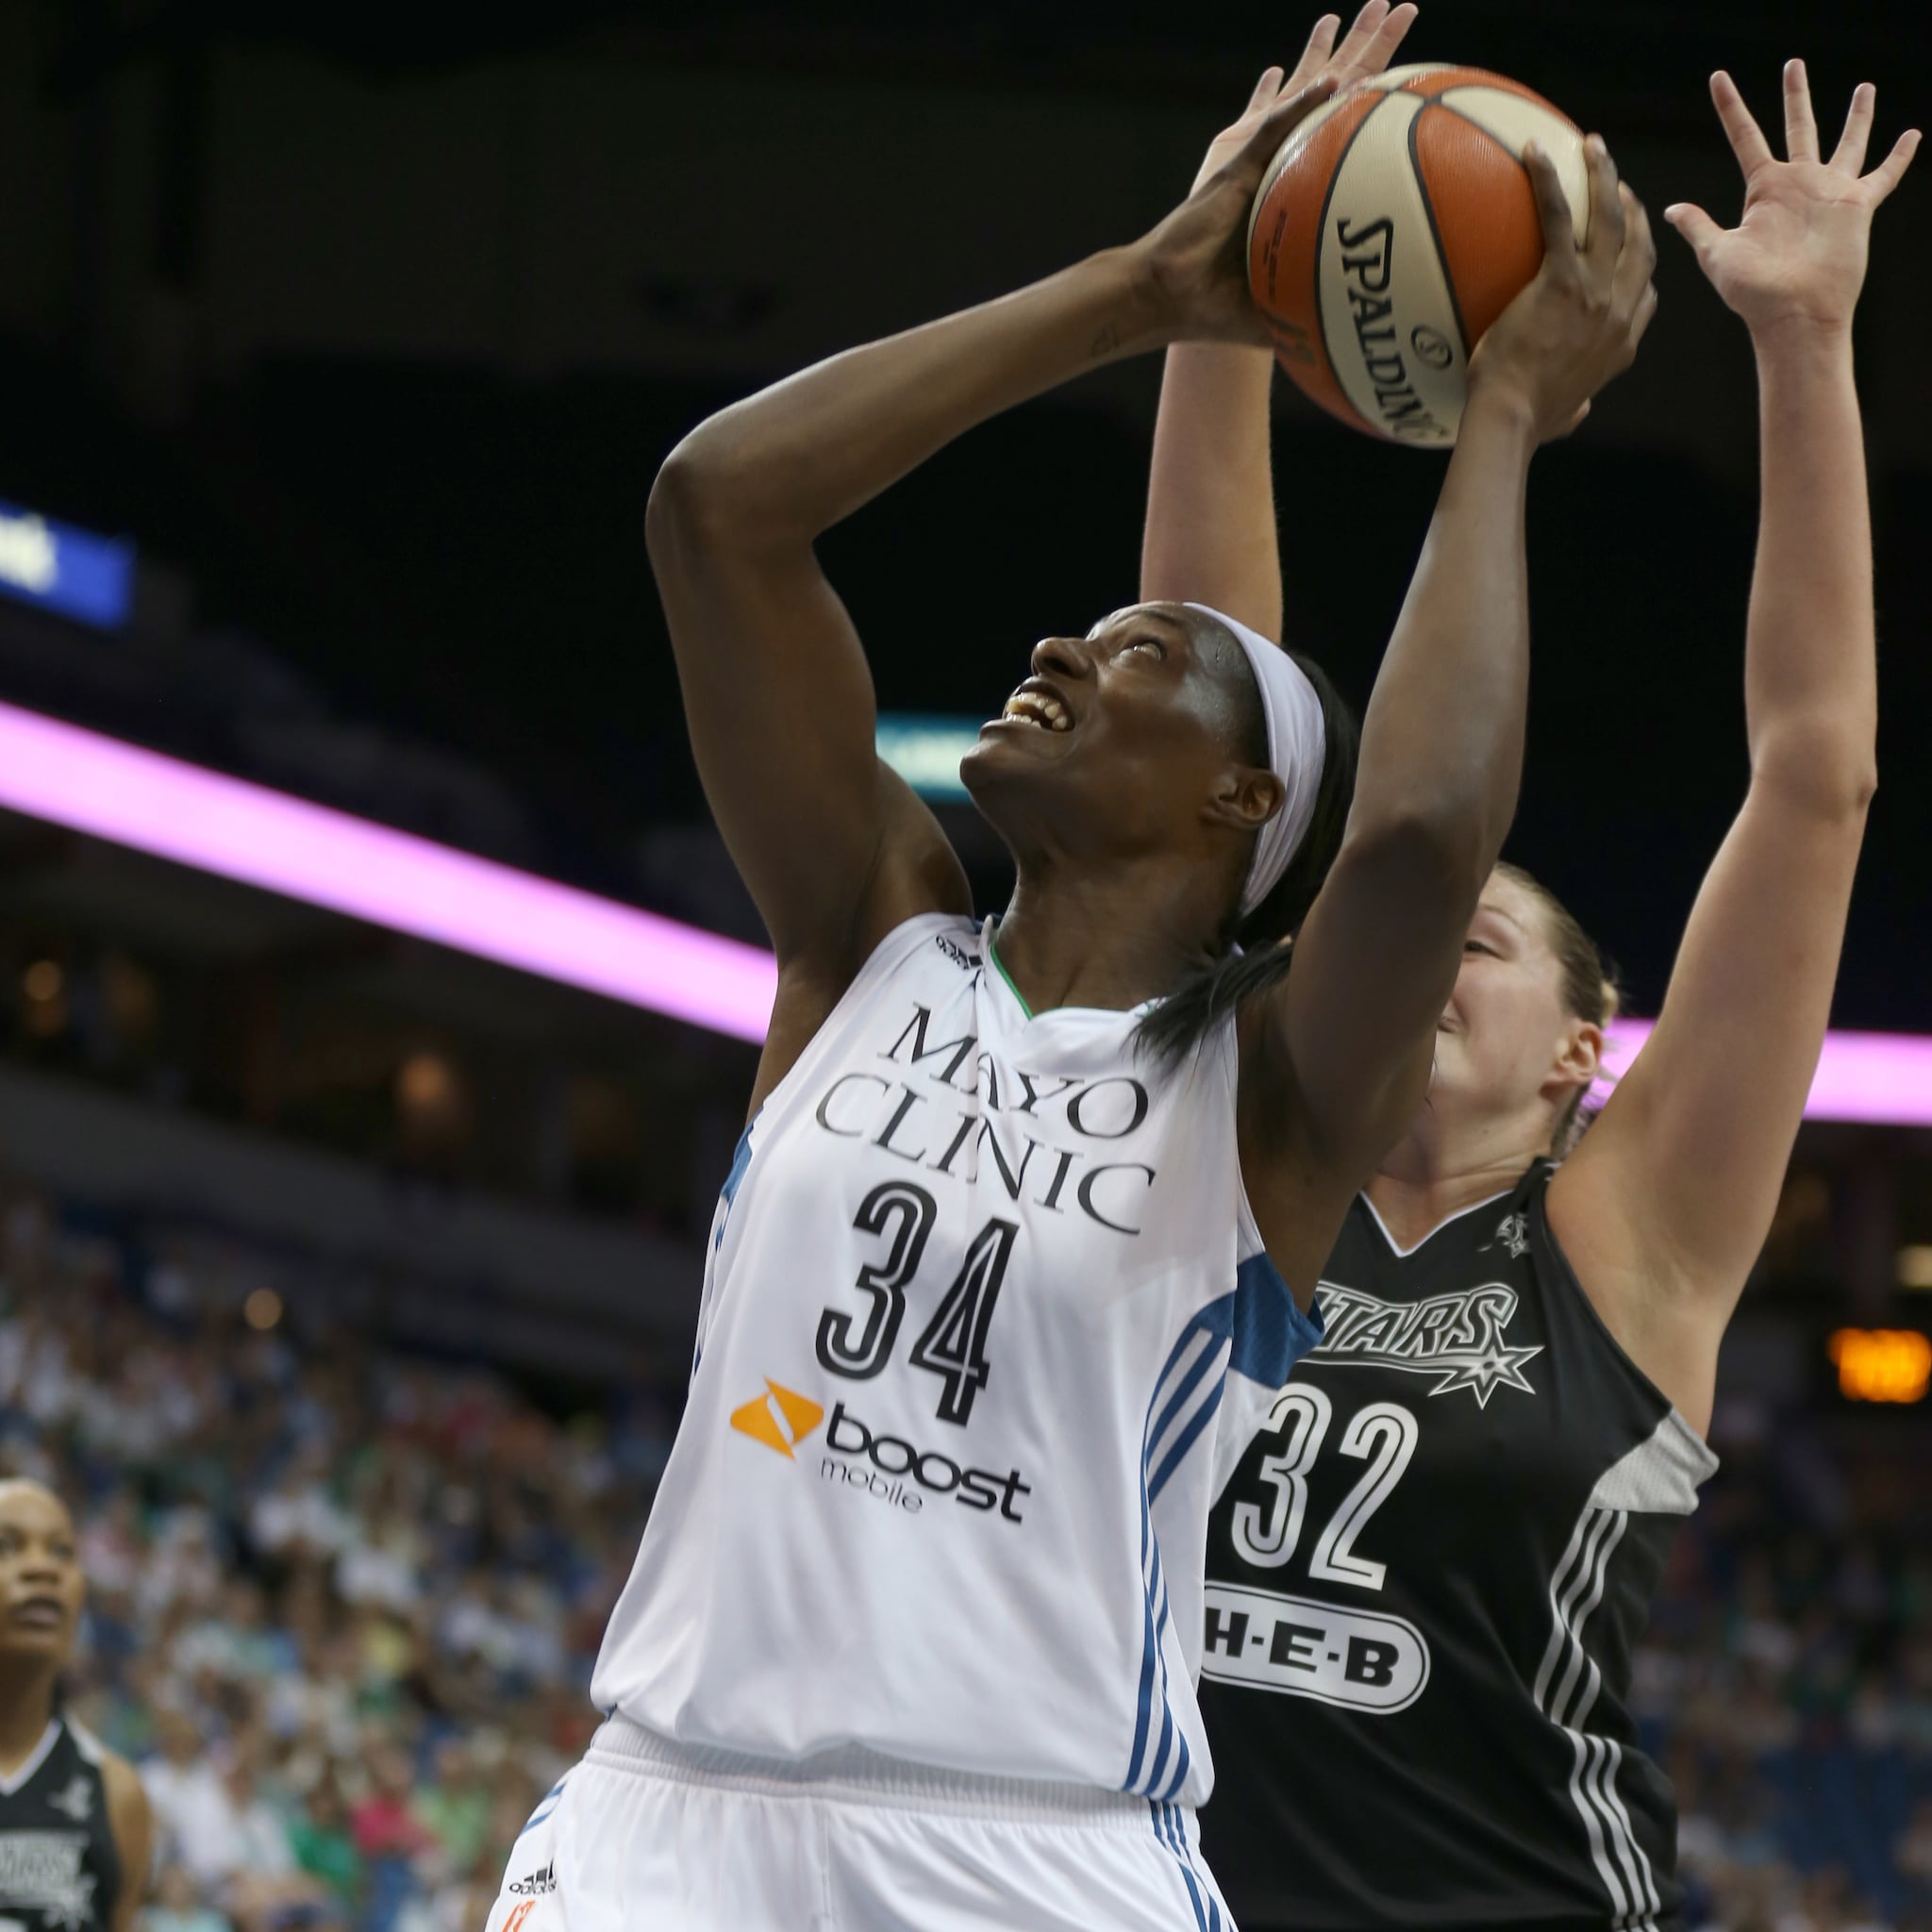 Lynx center Sylvia Fowles played great late once again, helping fuel the Lynx to a win and a playoff berth. Fowles finished with 16 points and four rebounds, including seven points in the third quarter.